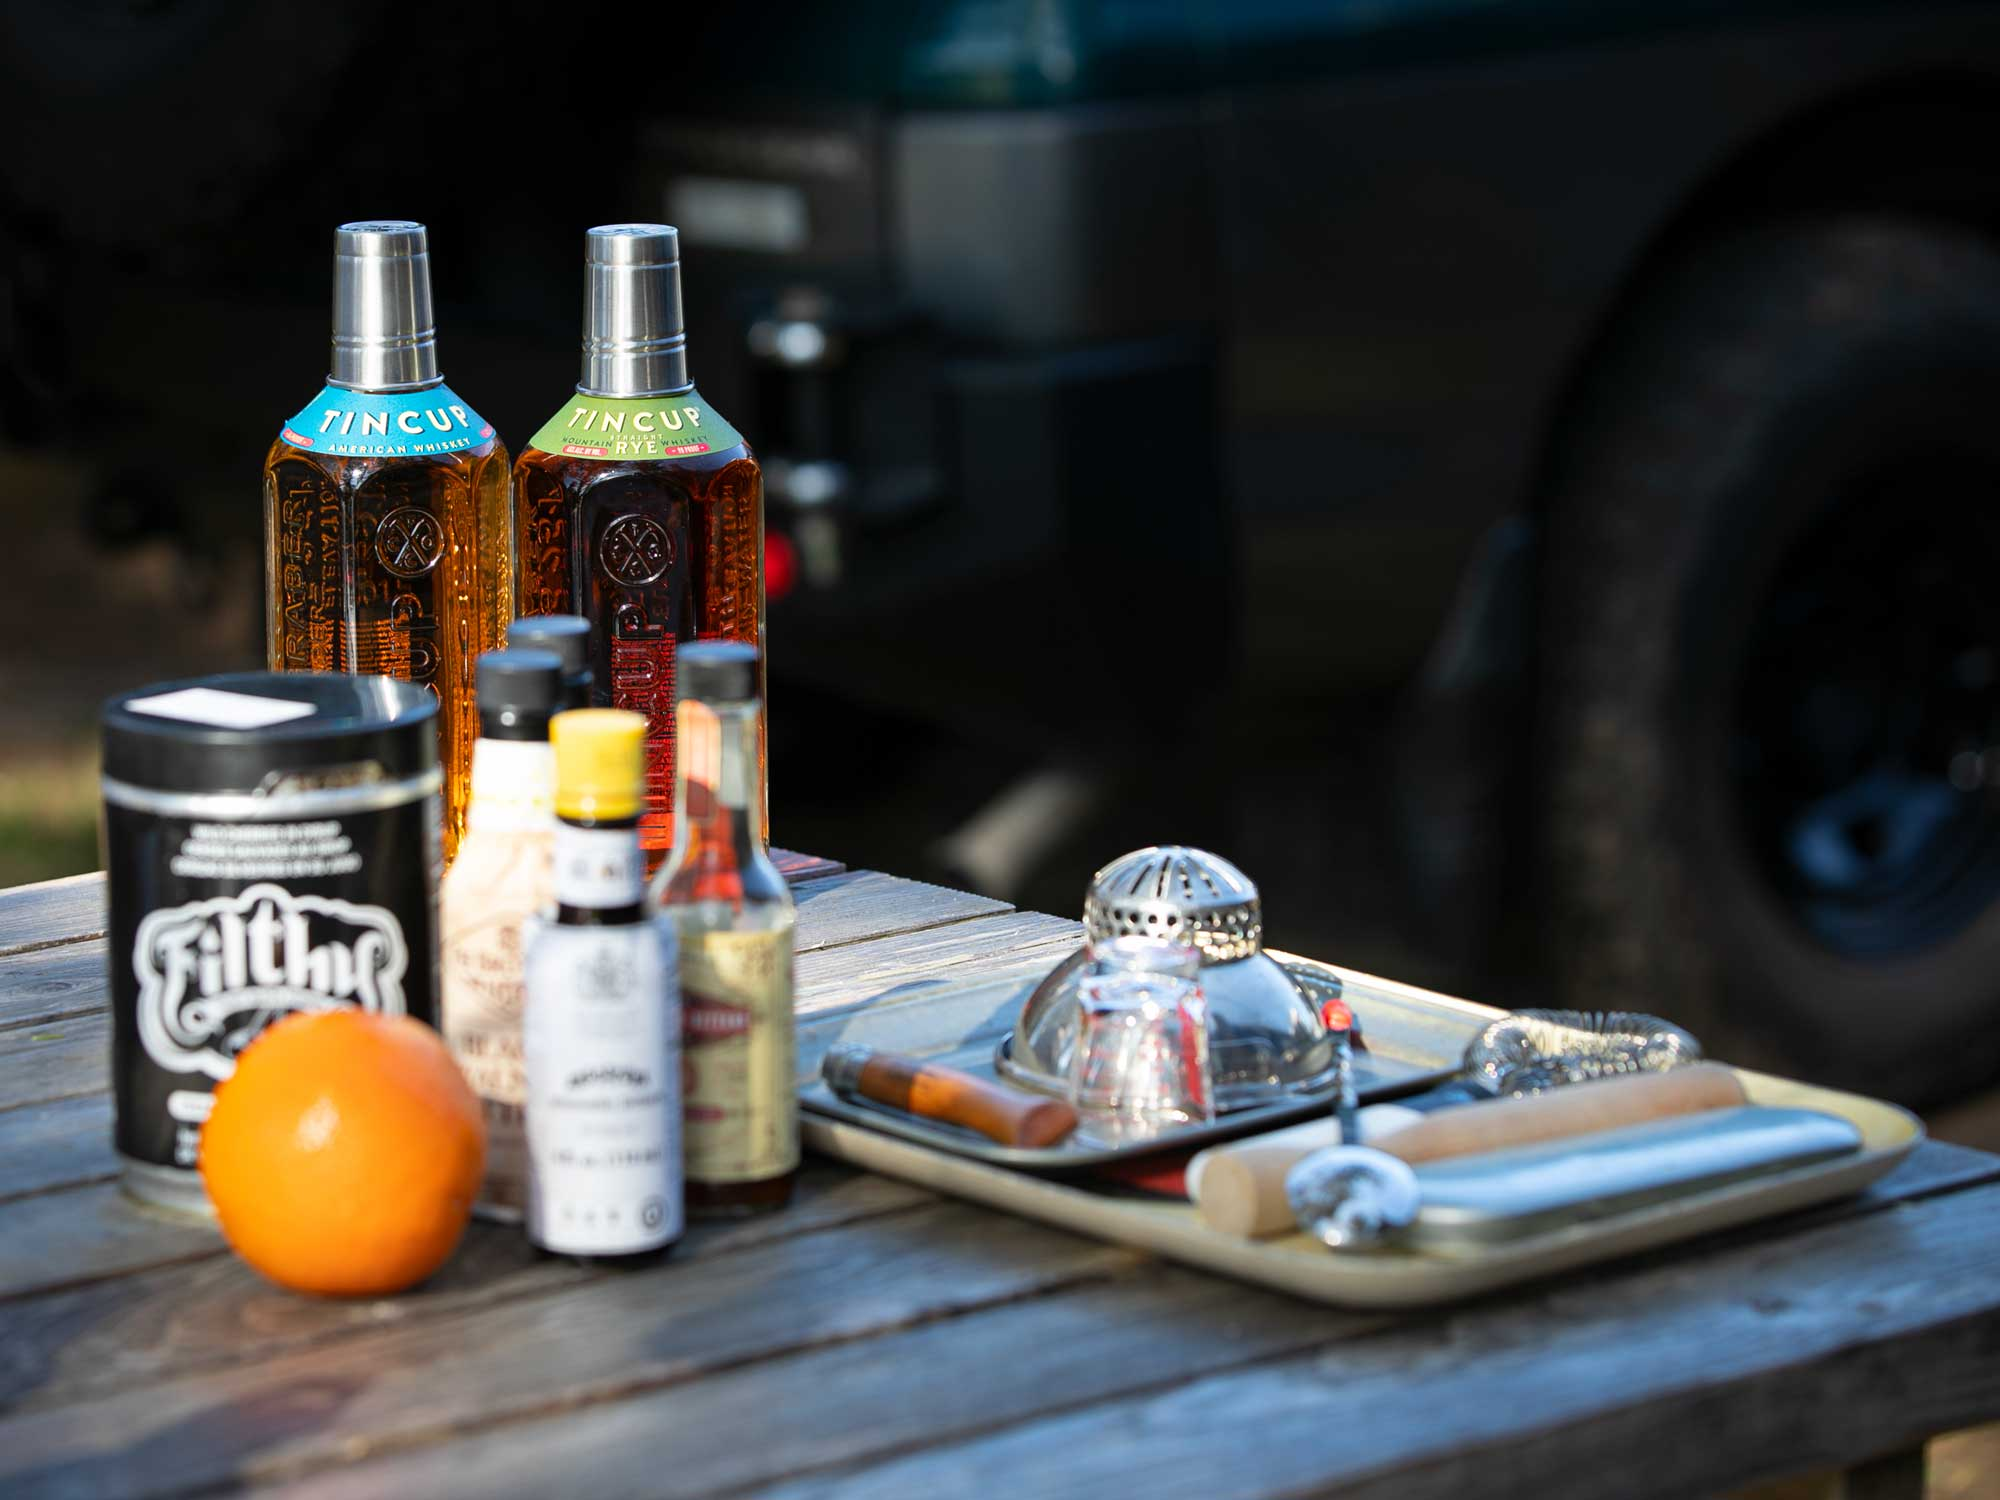 Tin Cup whiskeys and Manhattan cocktails